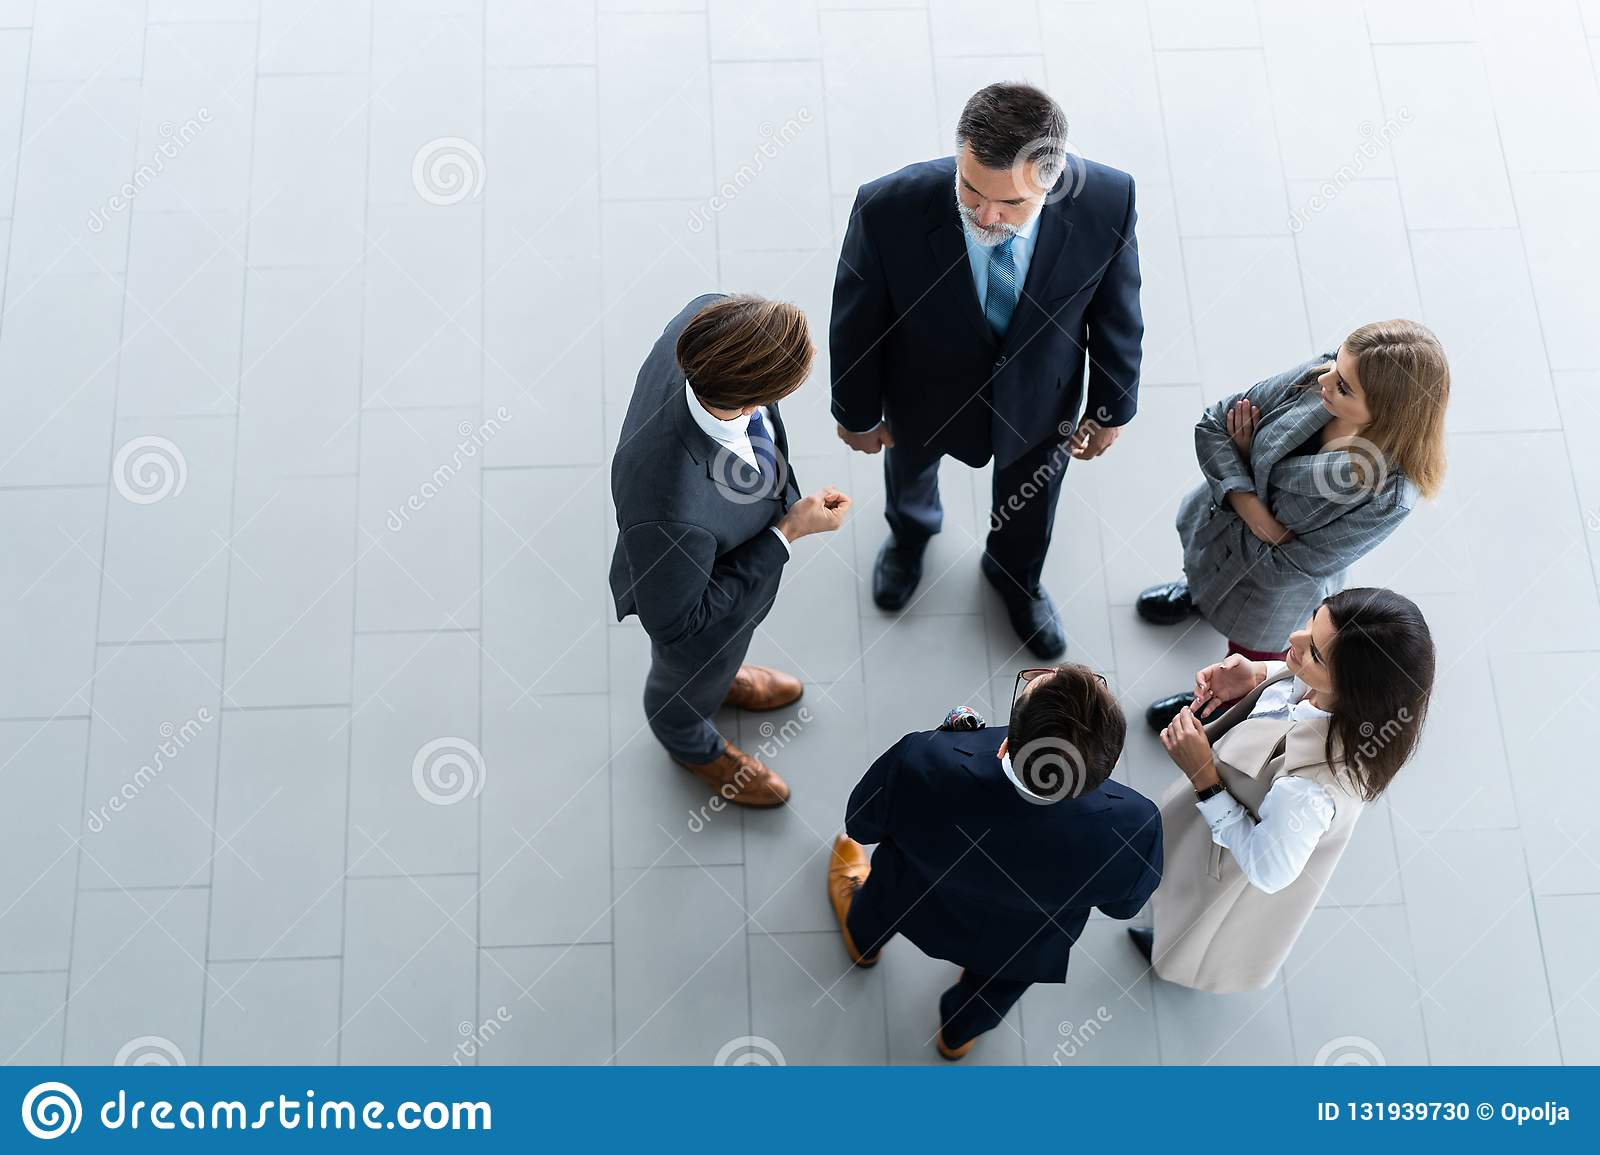 Top view of business people, Business meeting and teamwork .